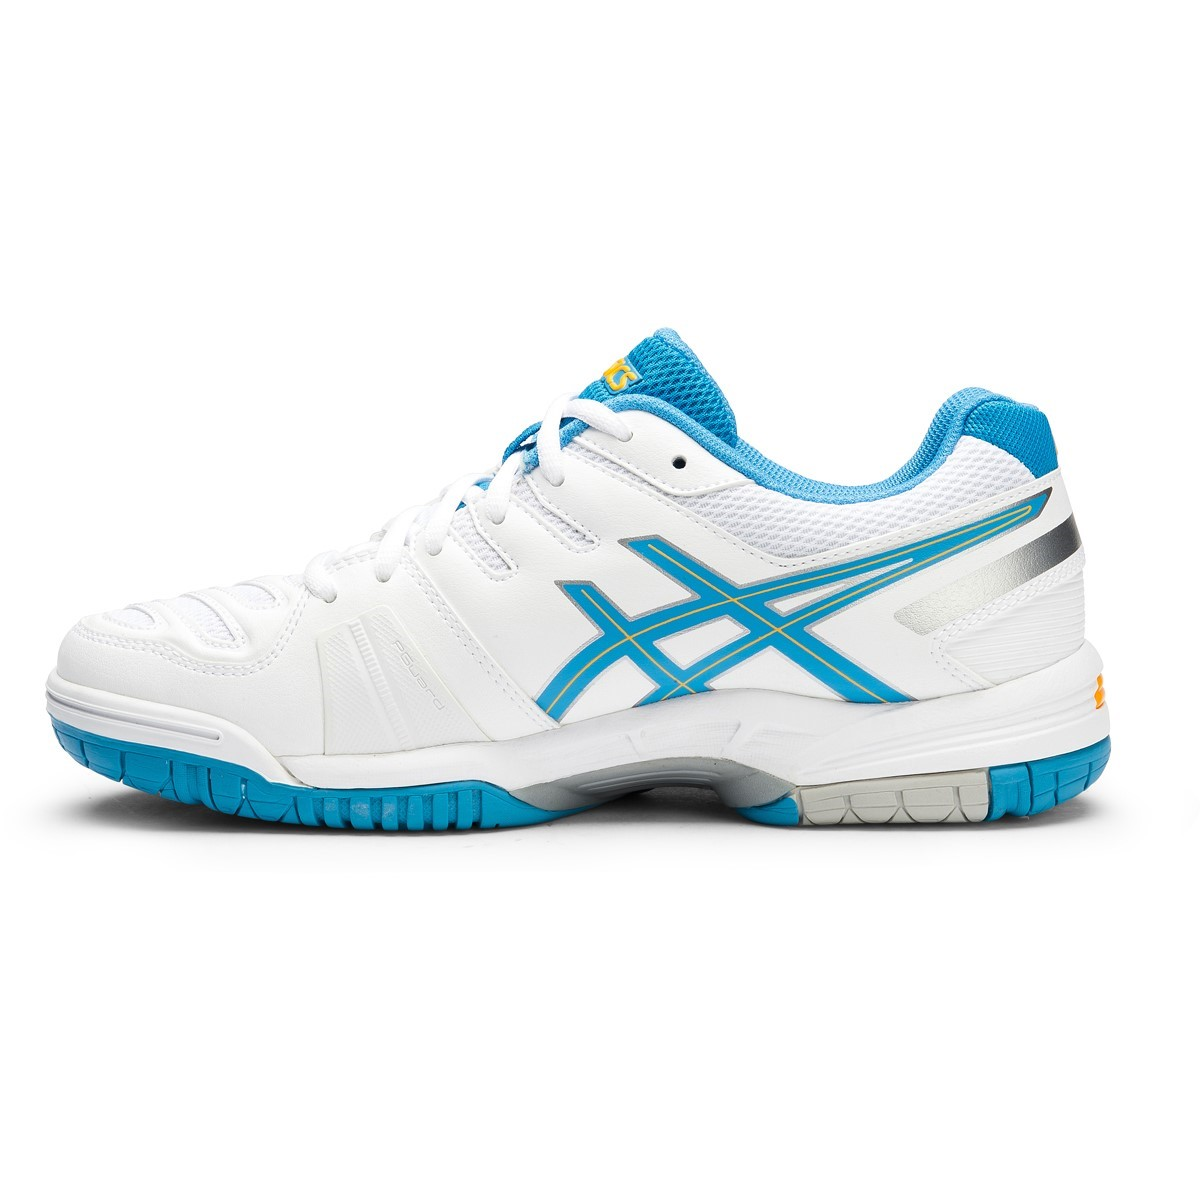 Asics Womens Tennis Shoes Australia